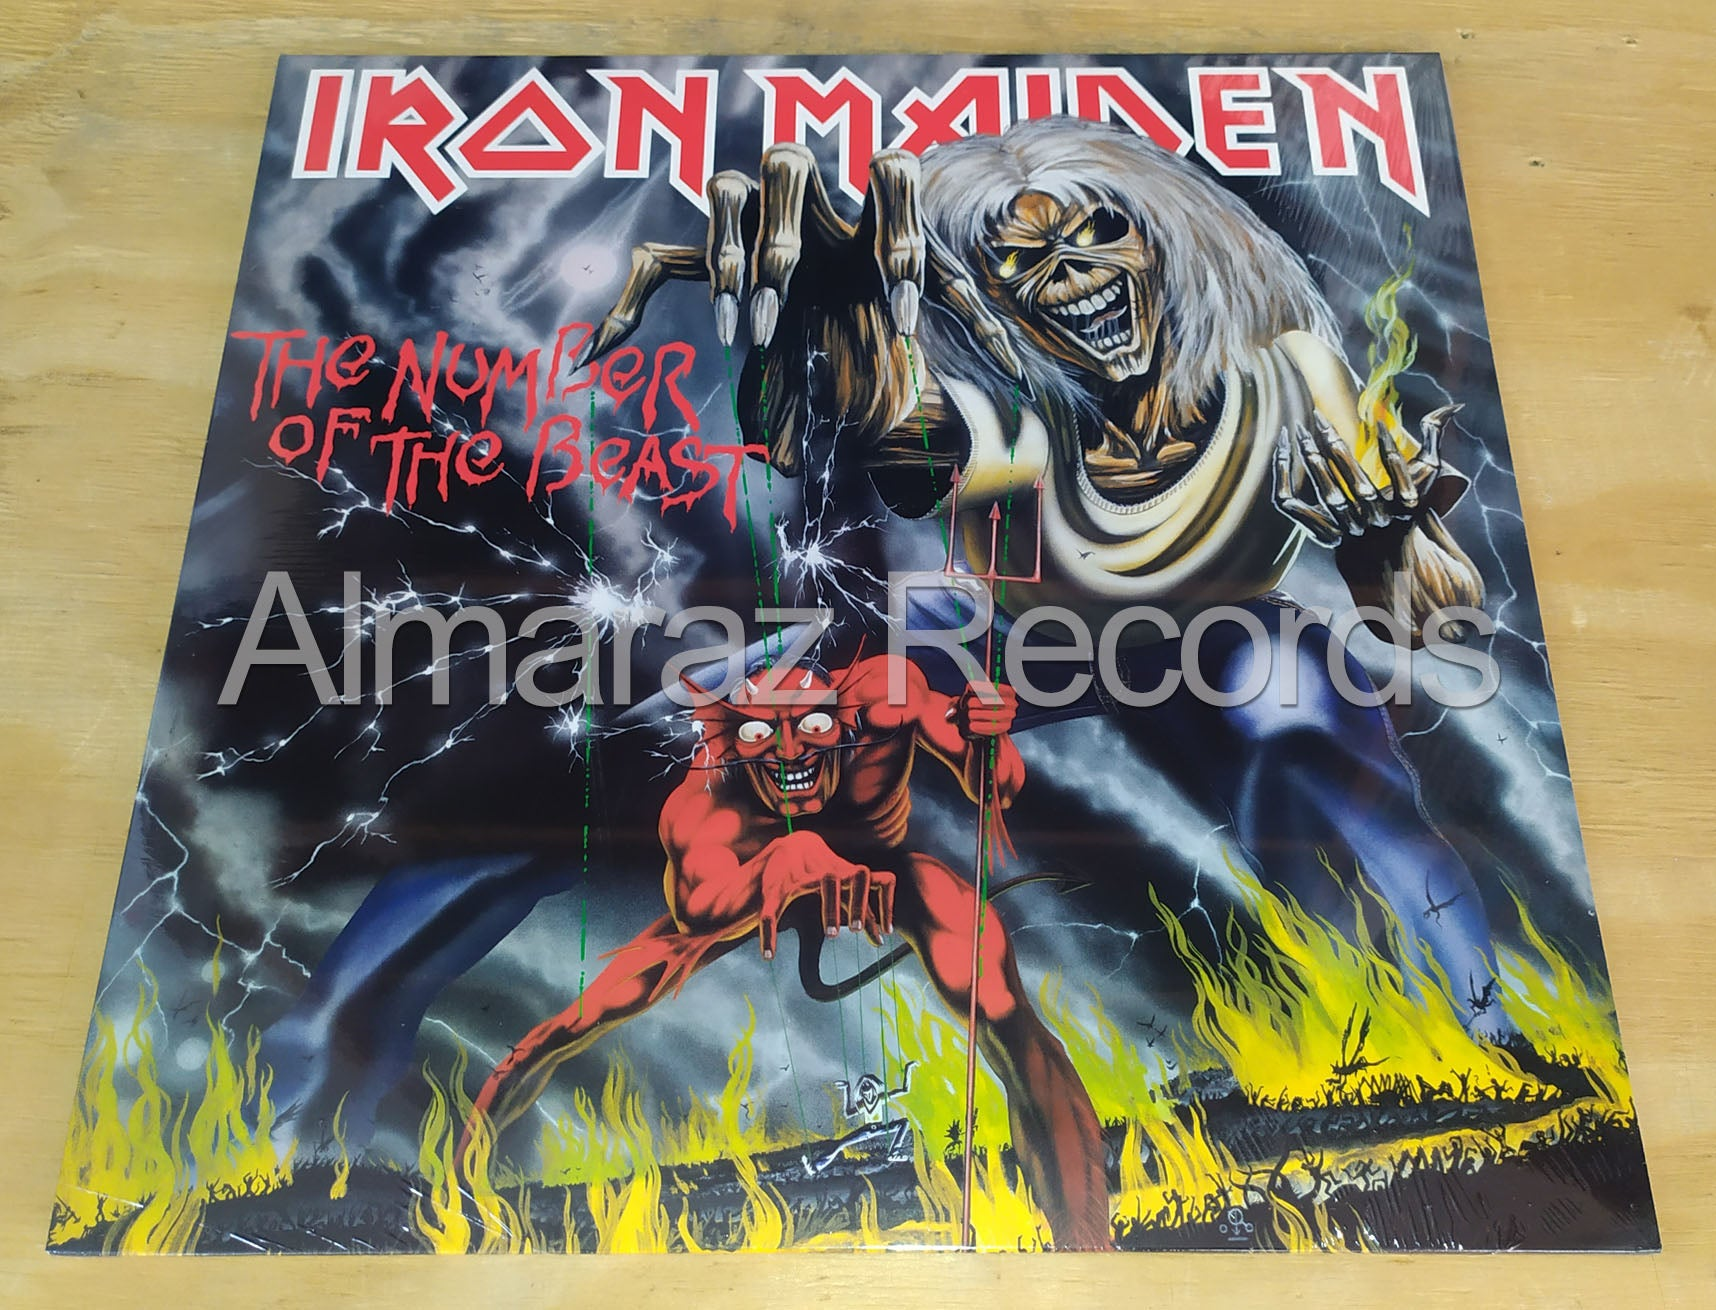 Iron Maiden The Number Of The Beast Vinyl LP